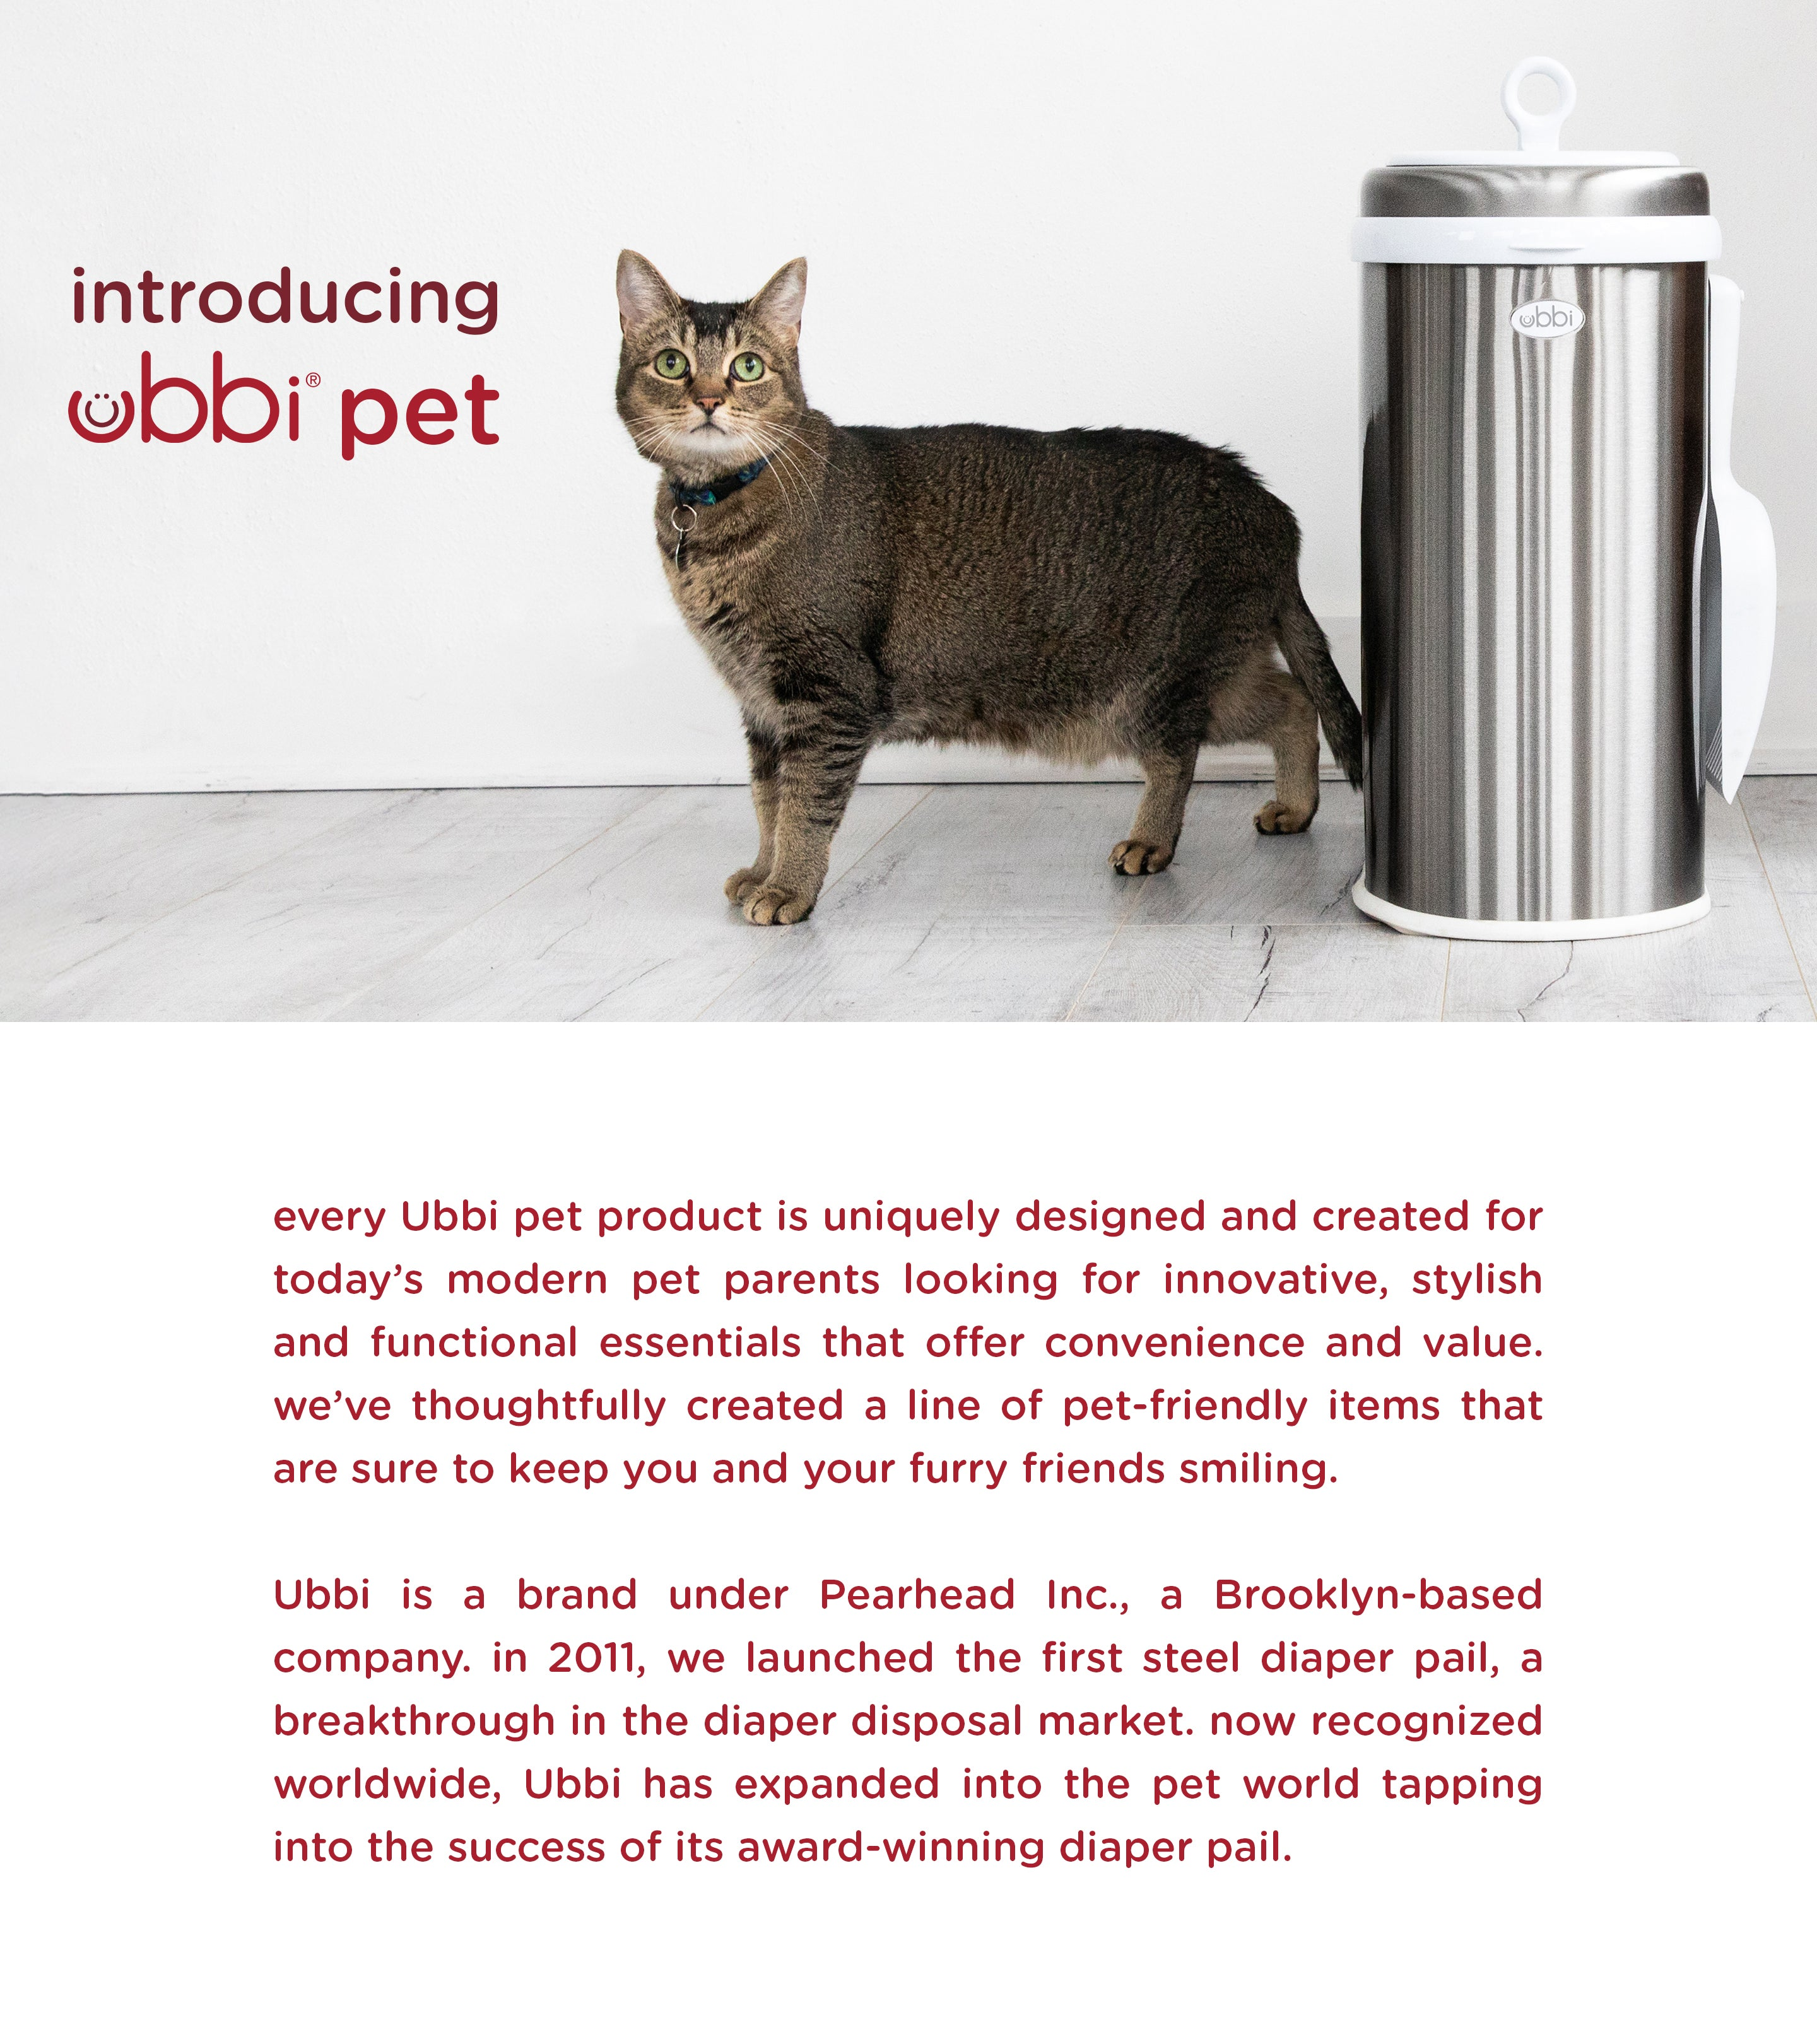 every Ubbi pet product is uniquely designed and created for today's modern pet parents looking for innovative, stylish and functional essentials that offer convenience and value. we've thoughtfully created a line of pet-friendly items that are sure to keep you and your furry friends smiling. Ubbi is a brand under Pearhead Inc., a Brooklyn-based company. in 2011, we launched the first steel diaper pail, a breakthrough in the diaper disposal market. now recognized worldwide, Ubbi has expanded into the pet world tapping into the success of its award-winning diaper pail.